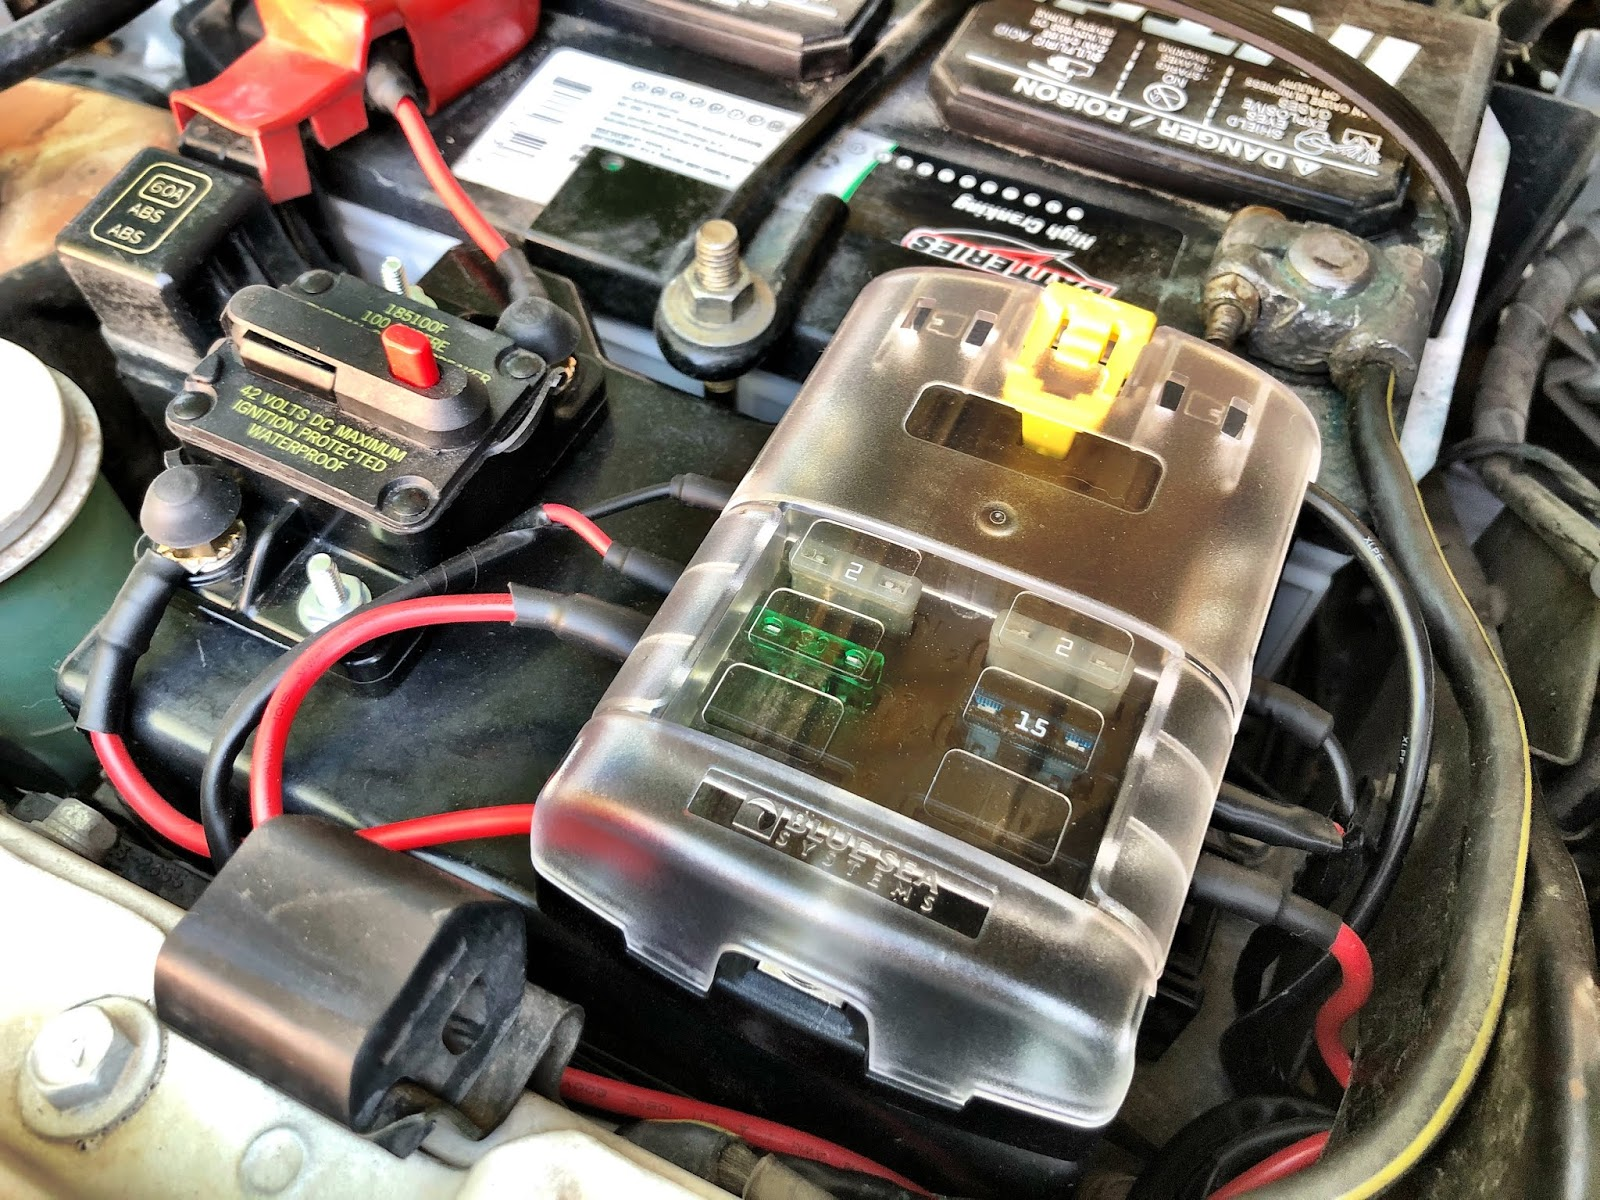 Blue Sea Fuse Box Troubleshooting Trusted Wiring Diagram Fj Cruiser Auxiliary Lights Lighting 1970 Toyota Block